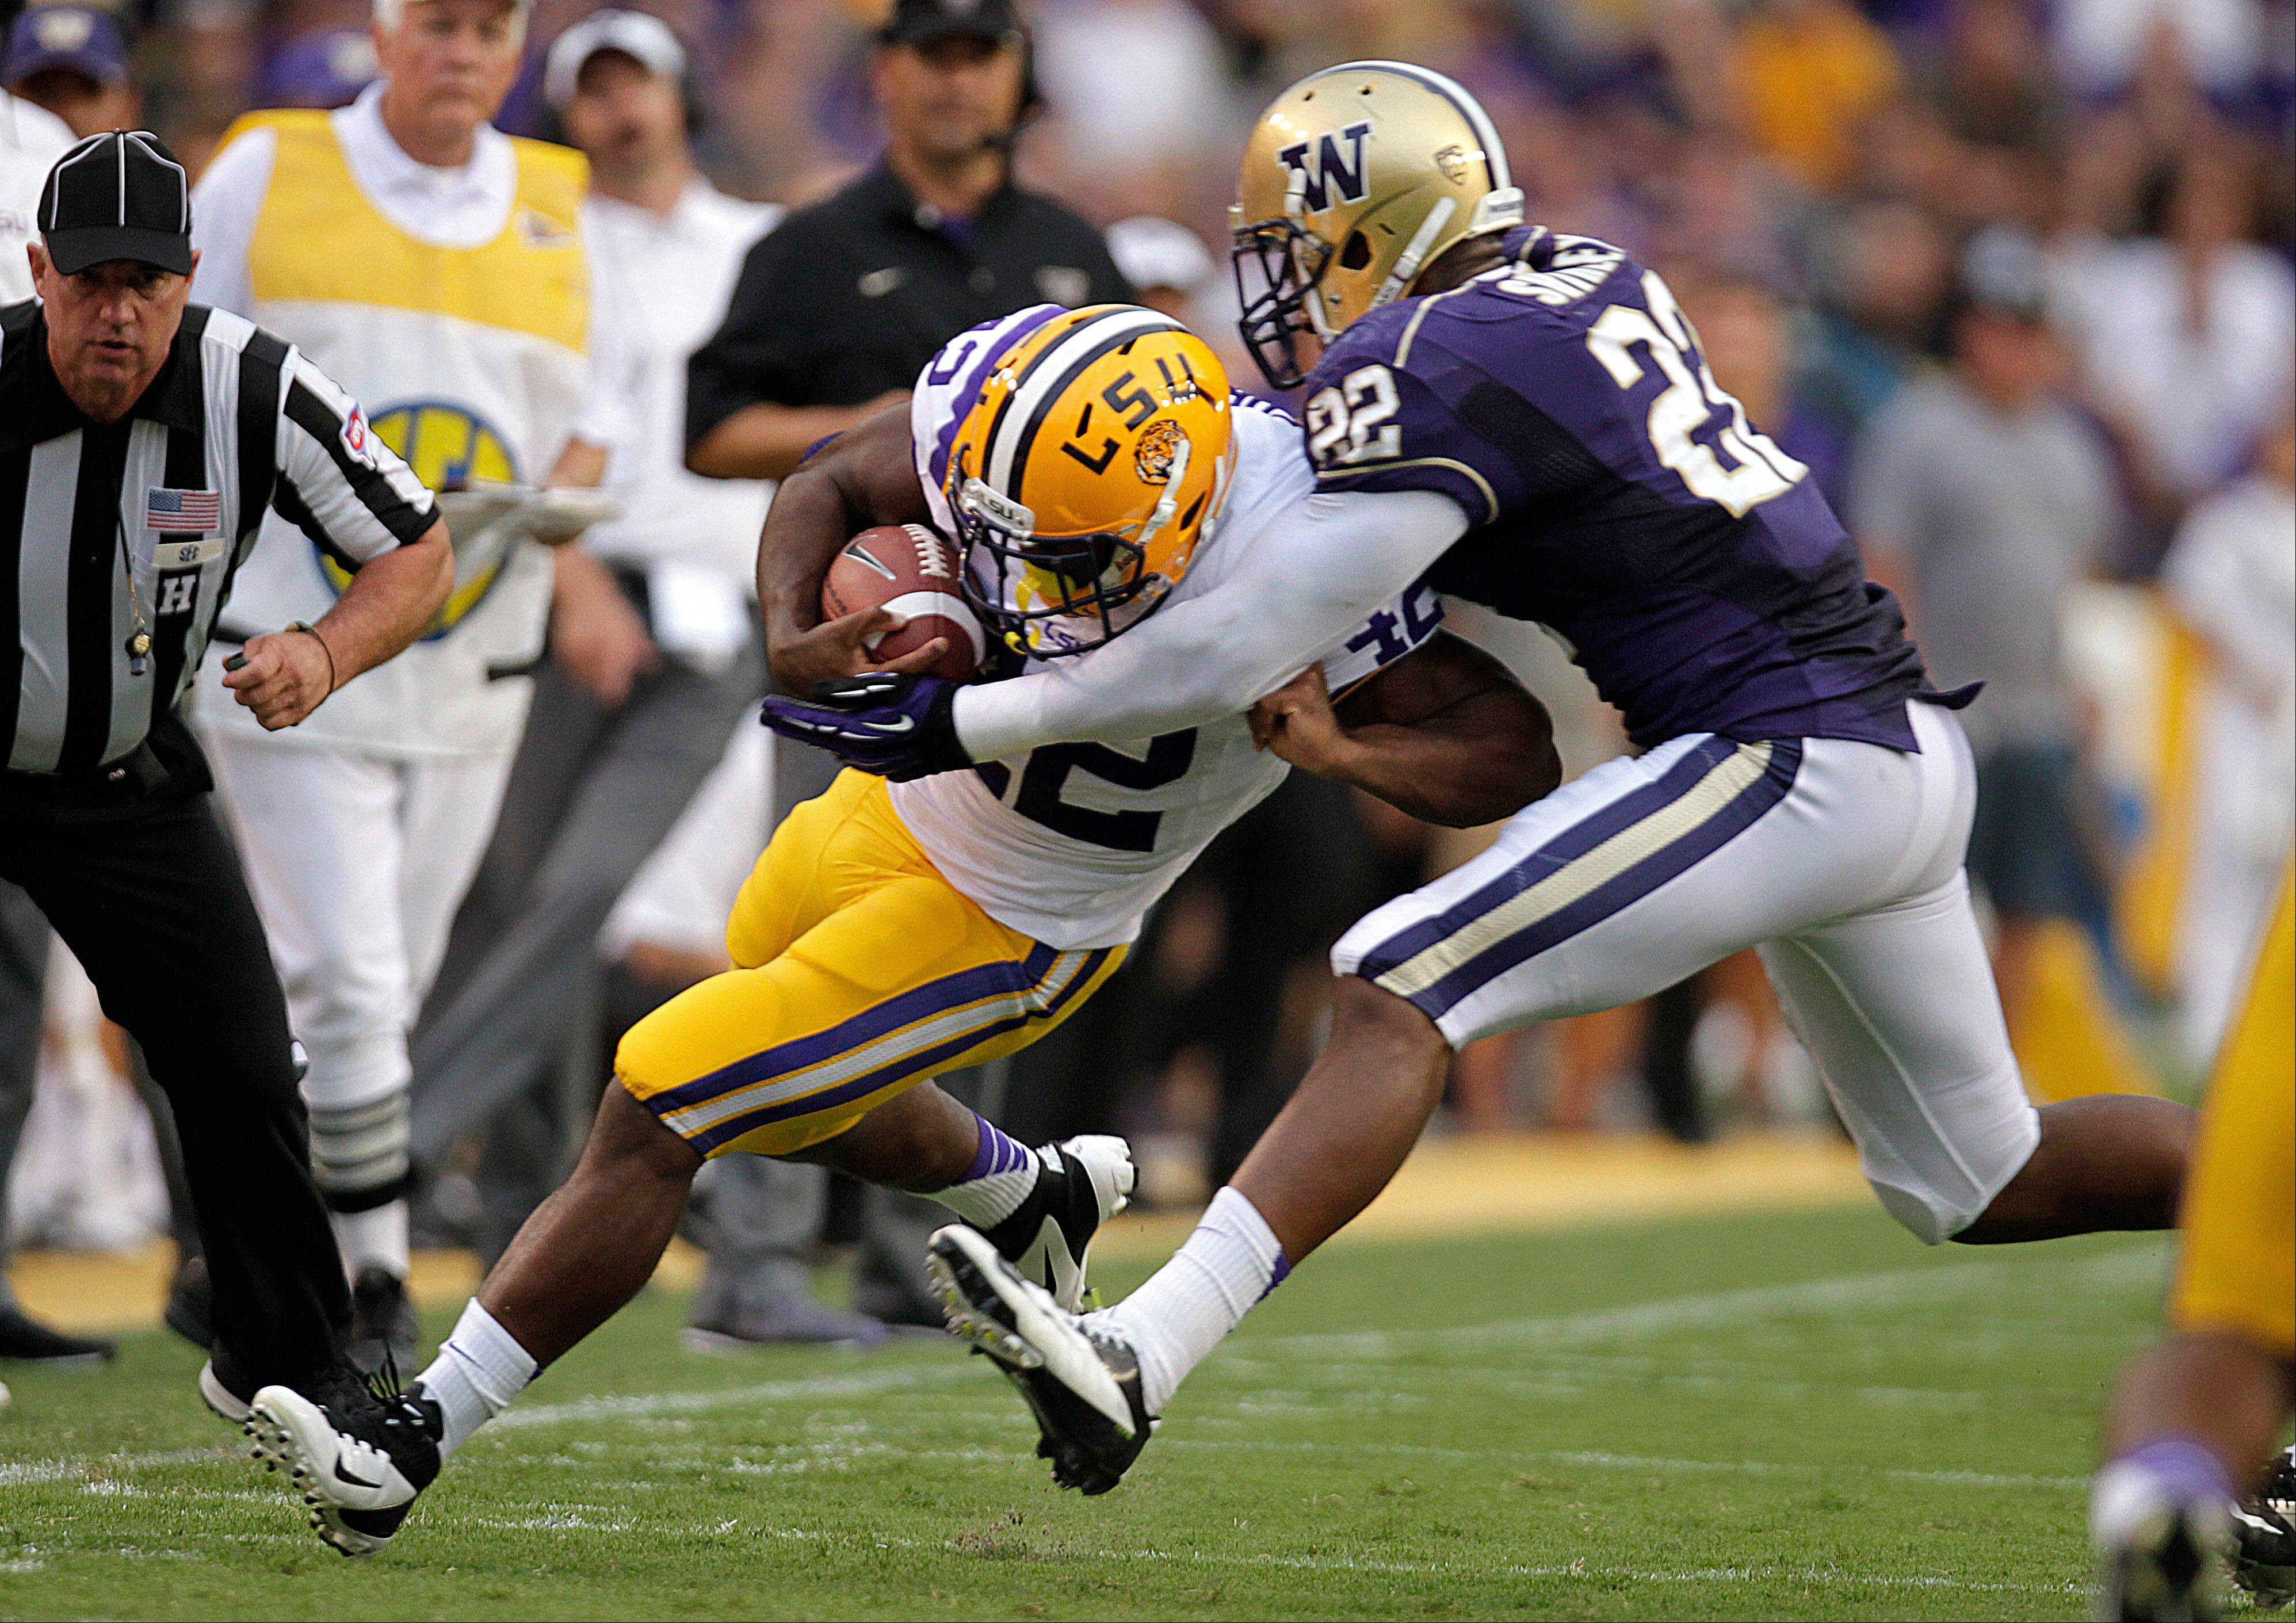 LSU running back Michael Ford tries to break a tackle by Washington defensive end Josh Shirley during the first half Saturday in Baton Rouge, La.